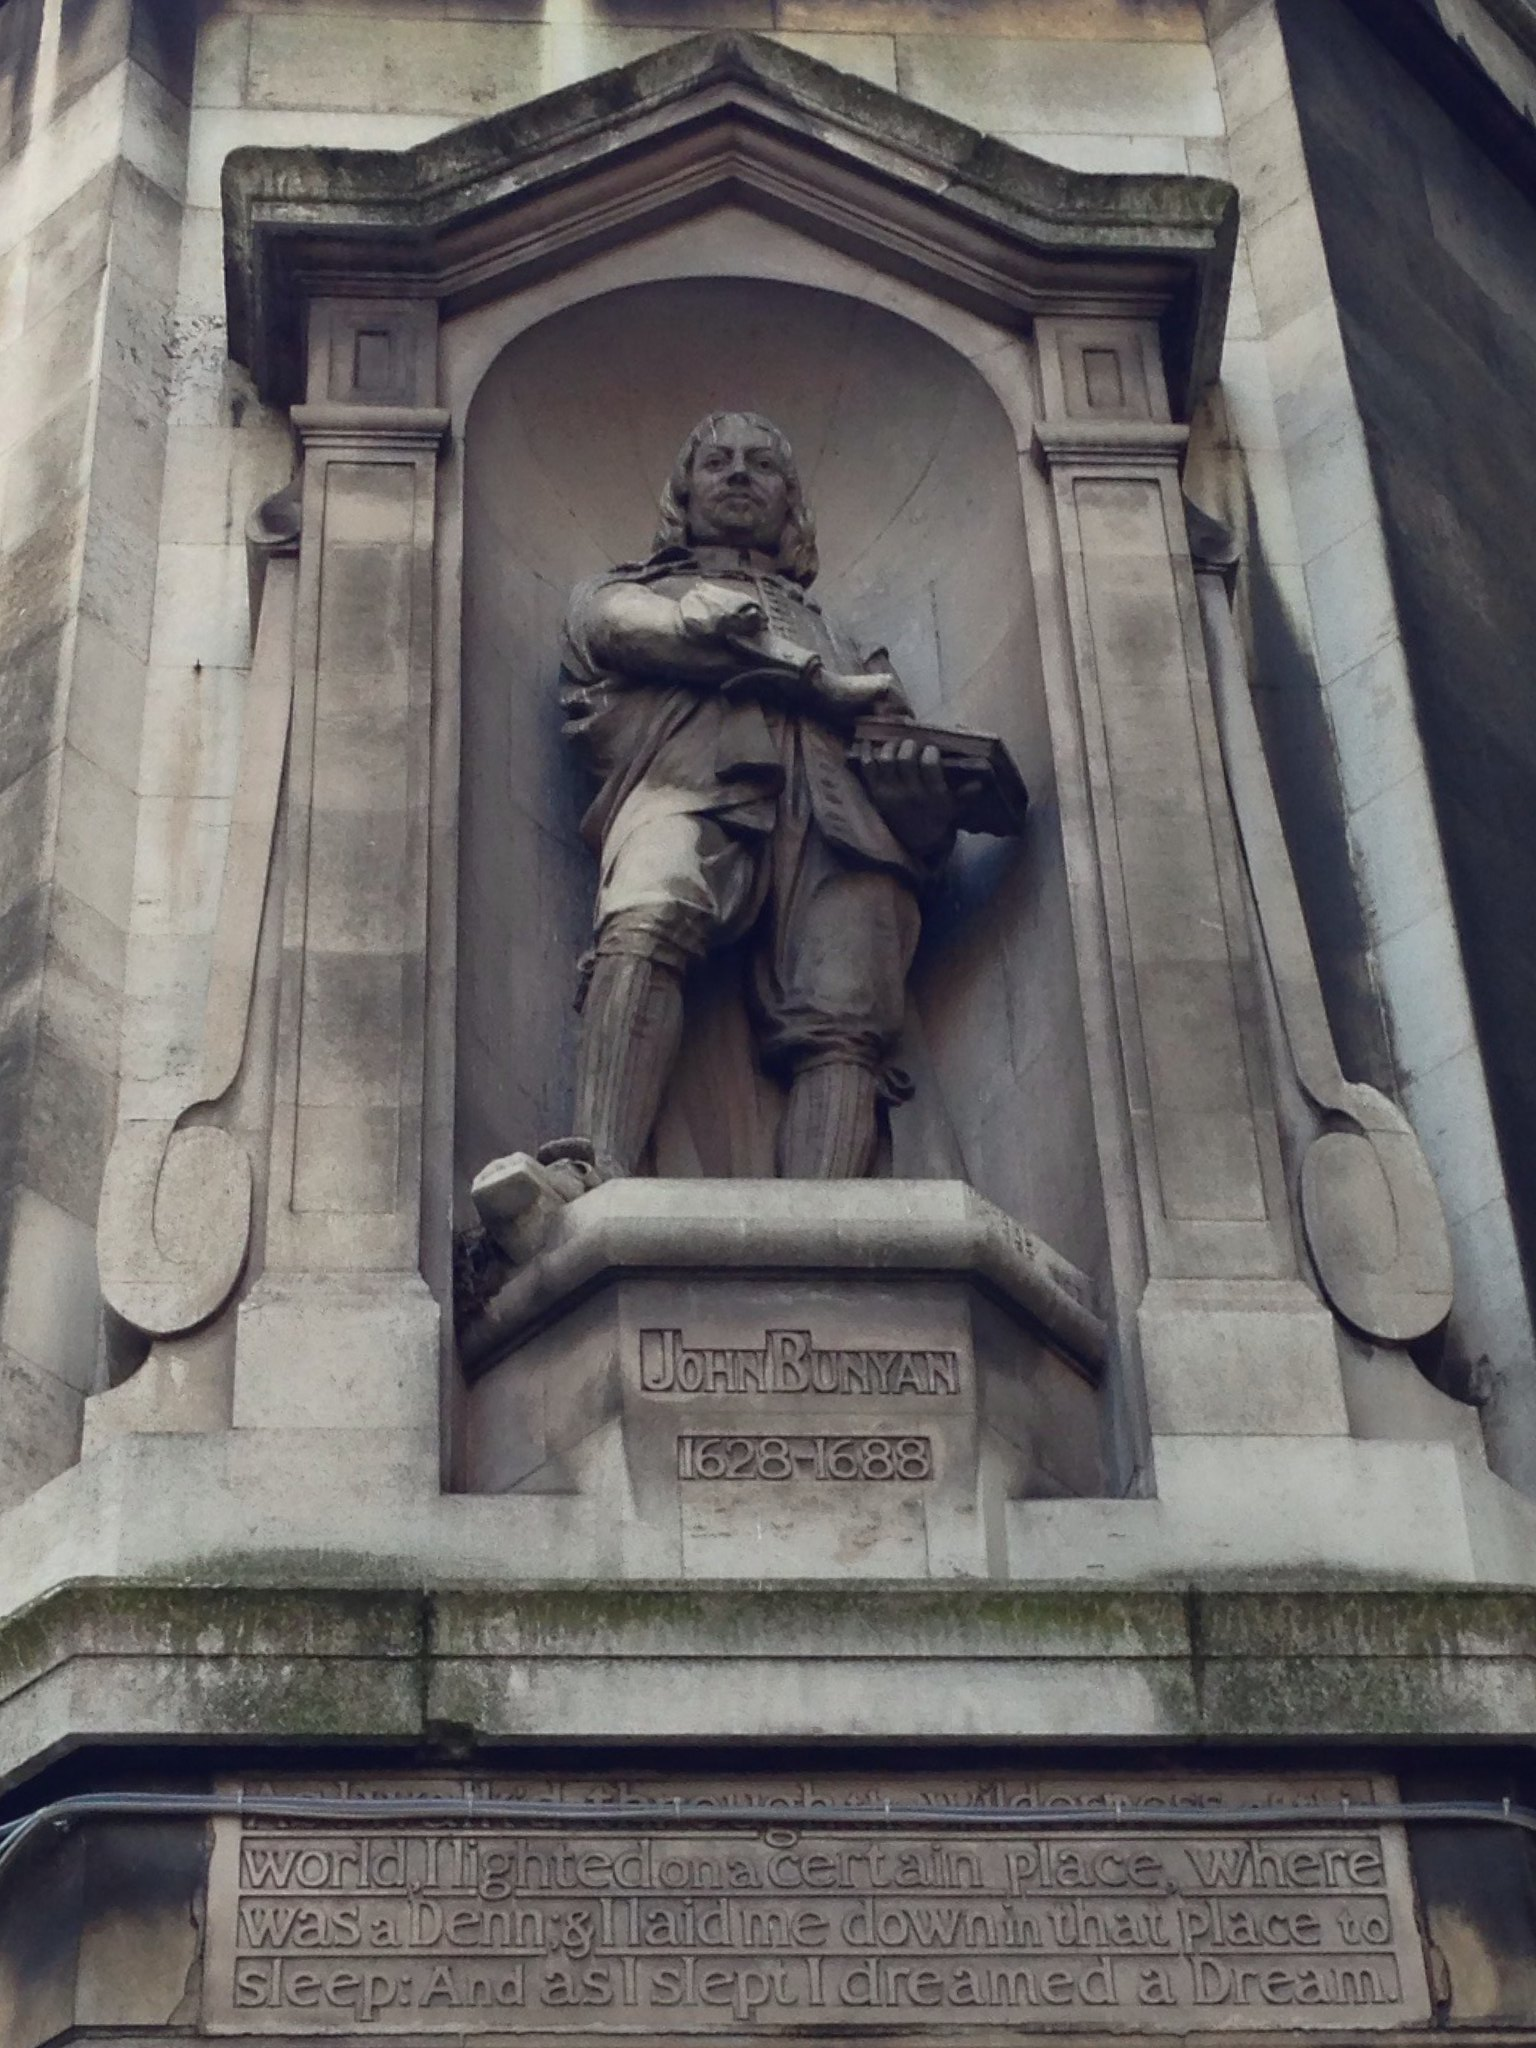 Statue of John Bunyan, author of A Pilgrim's Progress, on the corner of Catton Street, Holborn.